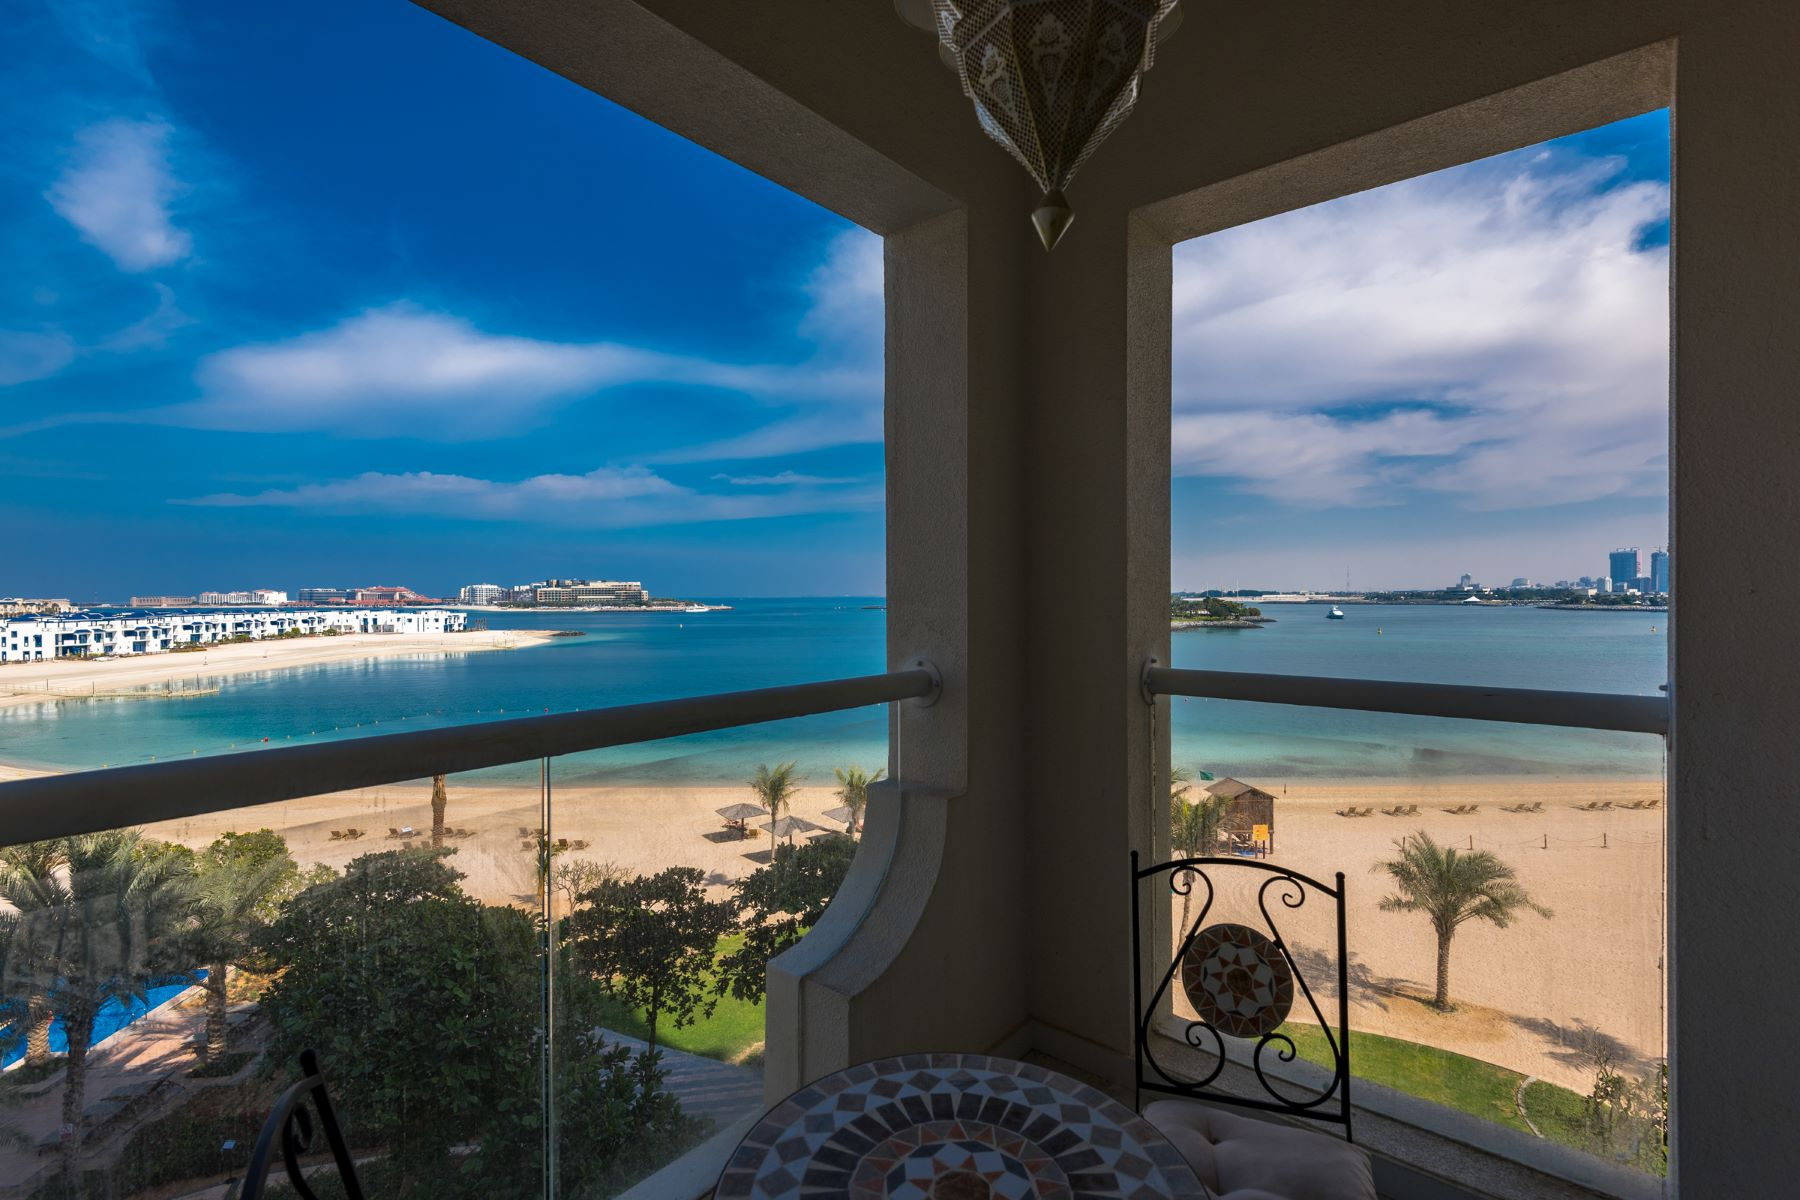 Apartment for Sale at Beach front stunning sea view apartment on The Palm Other Dubai, United Arab Emirates